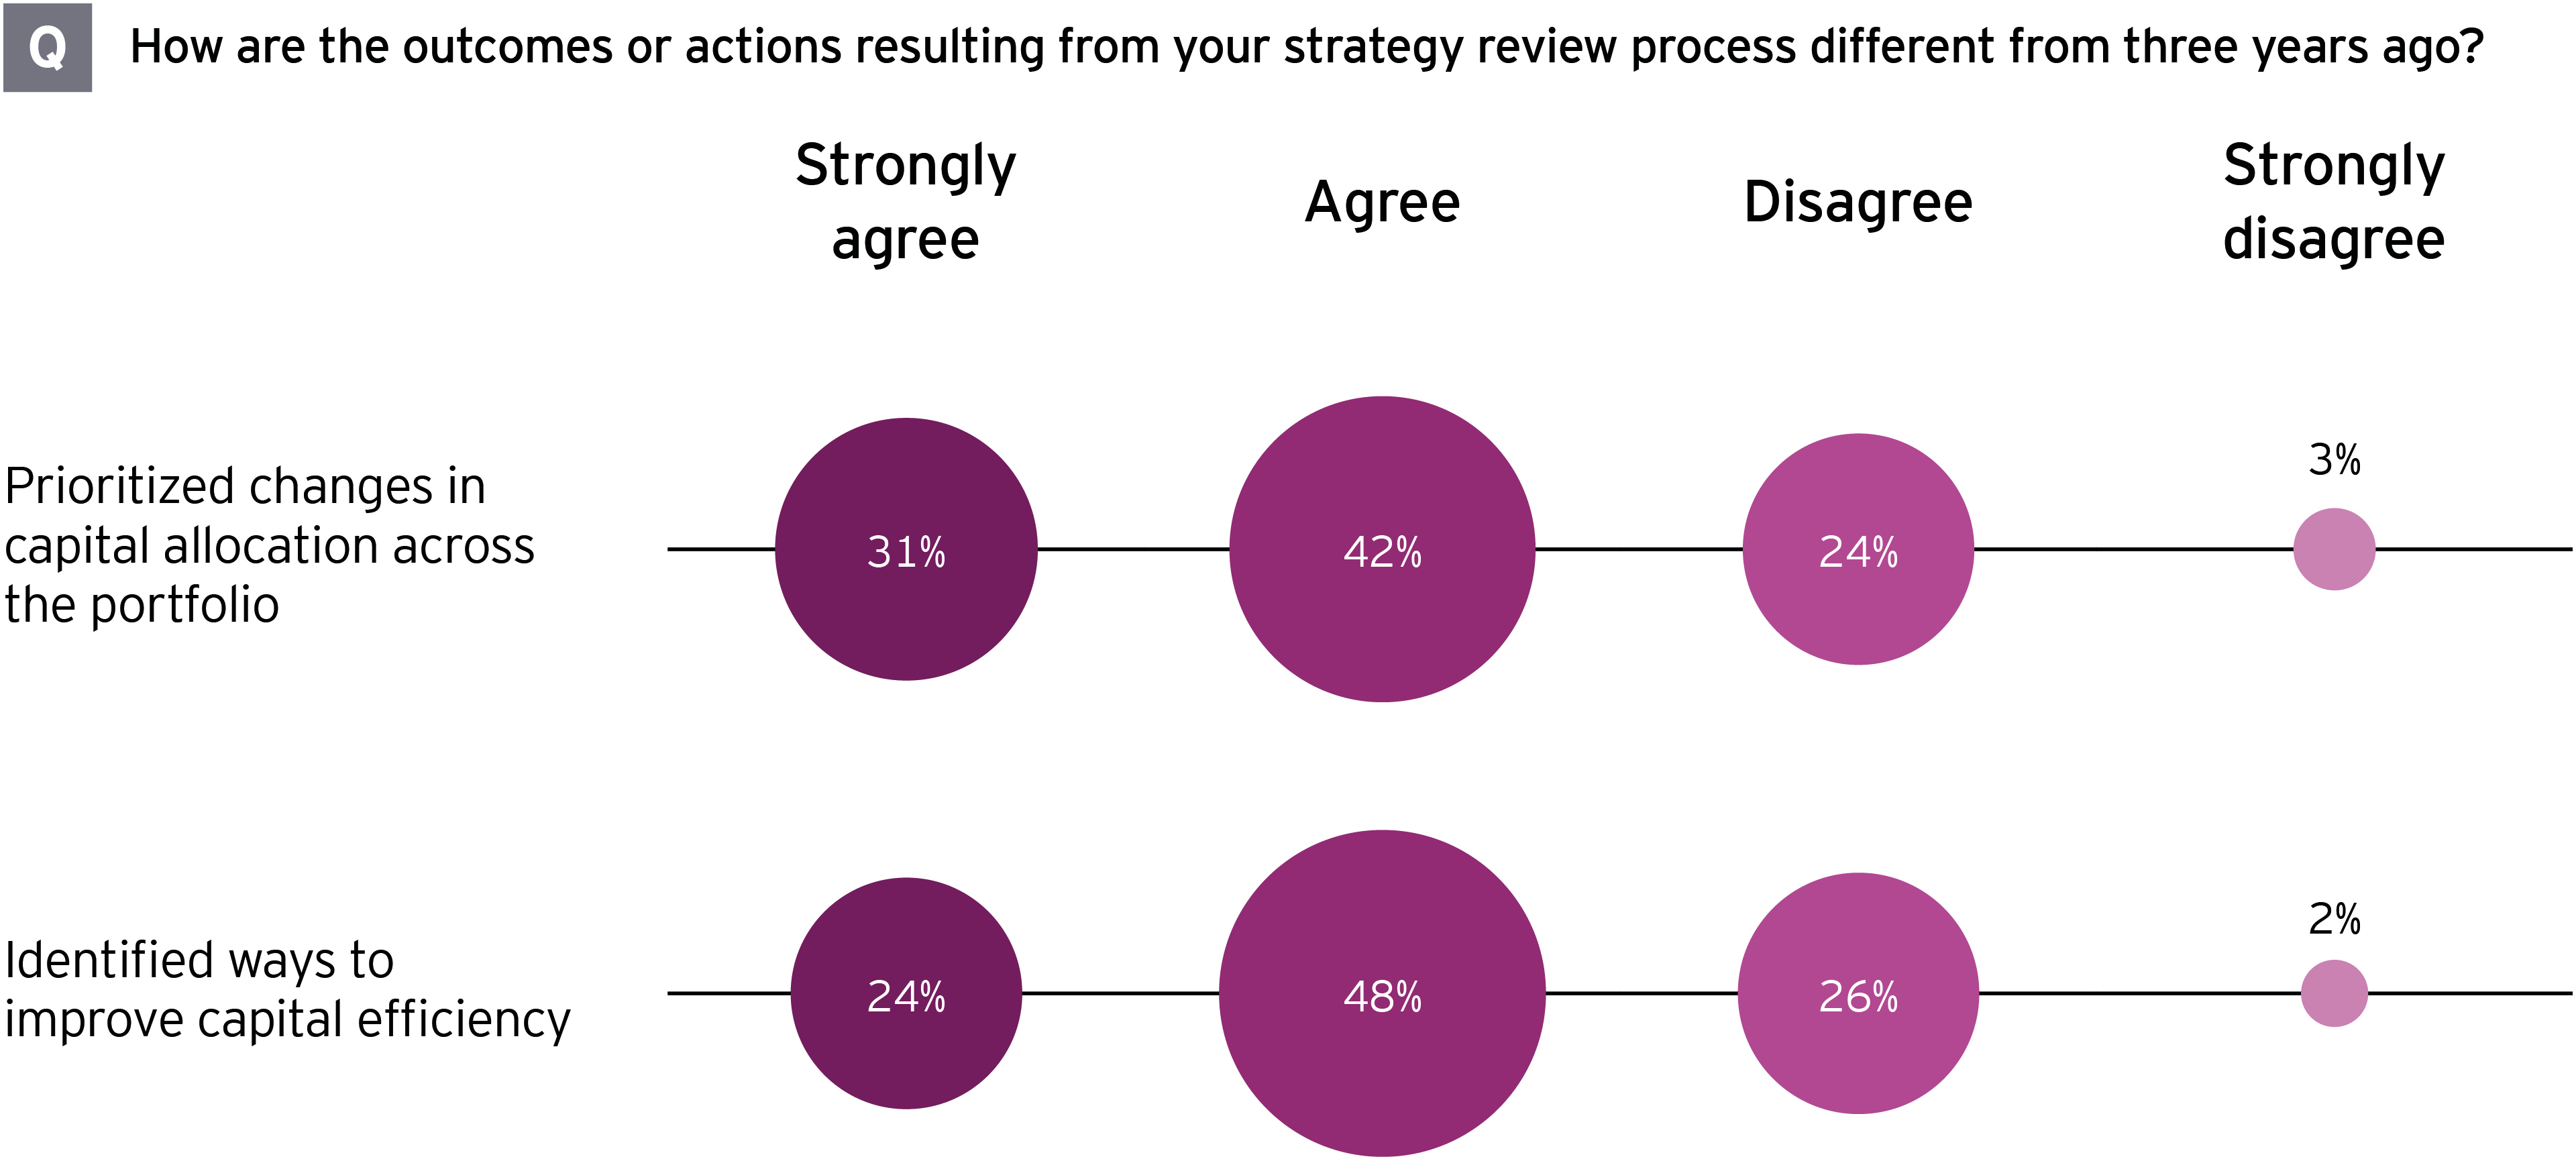 EY M&A survey how actions resulting from strategy review process different from three years ago